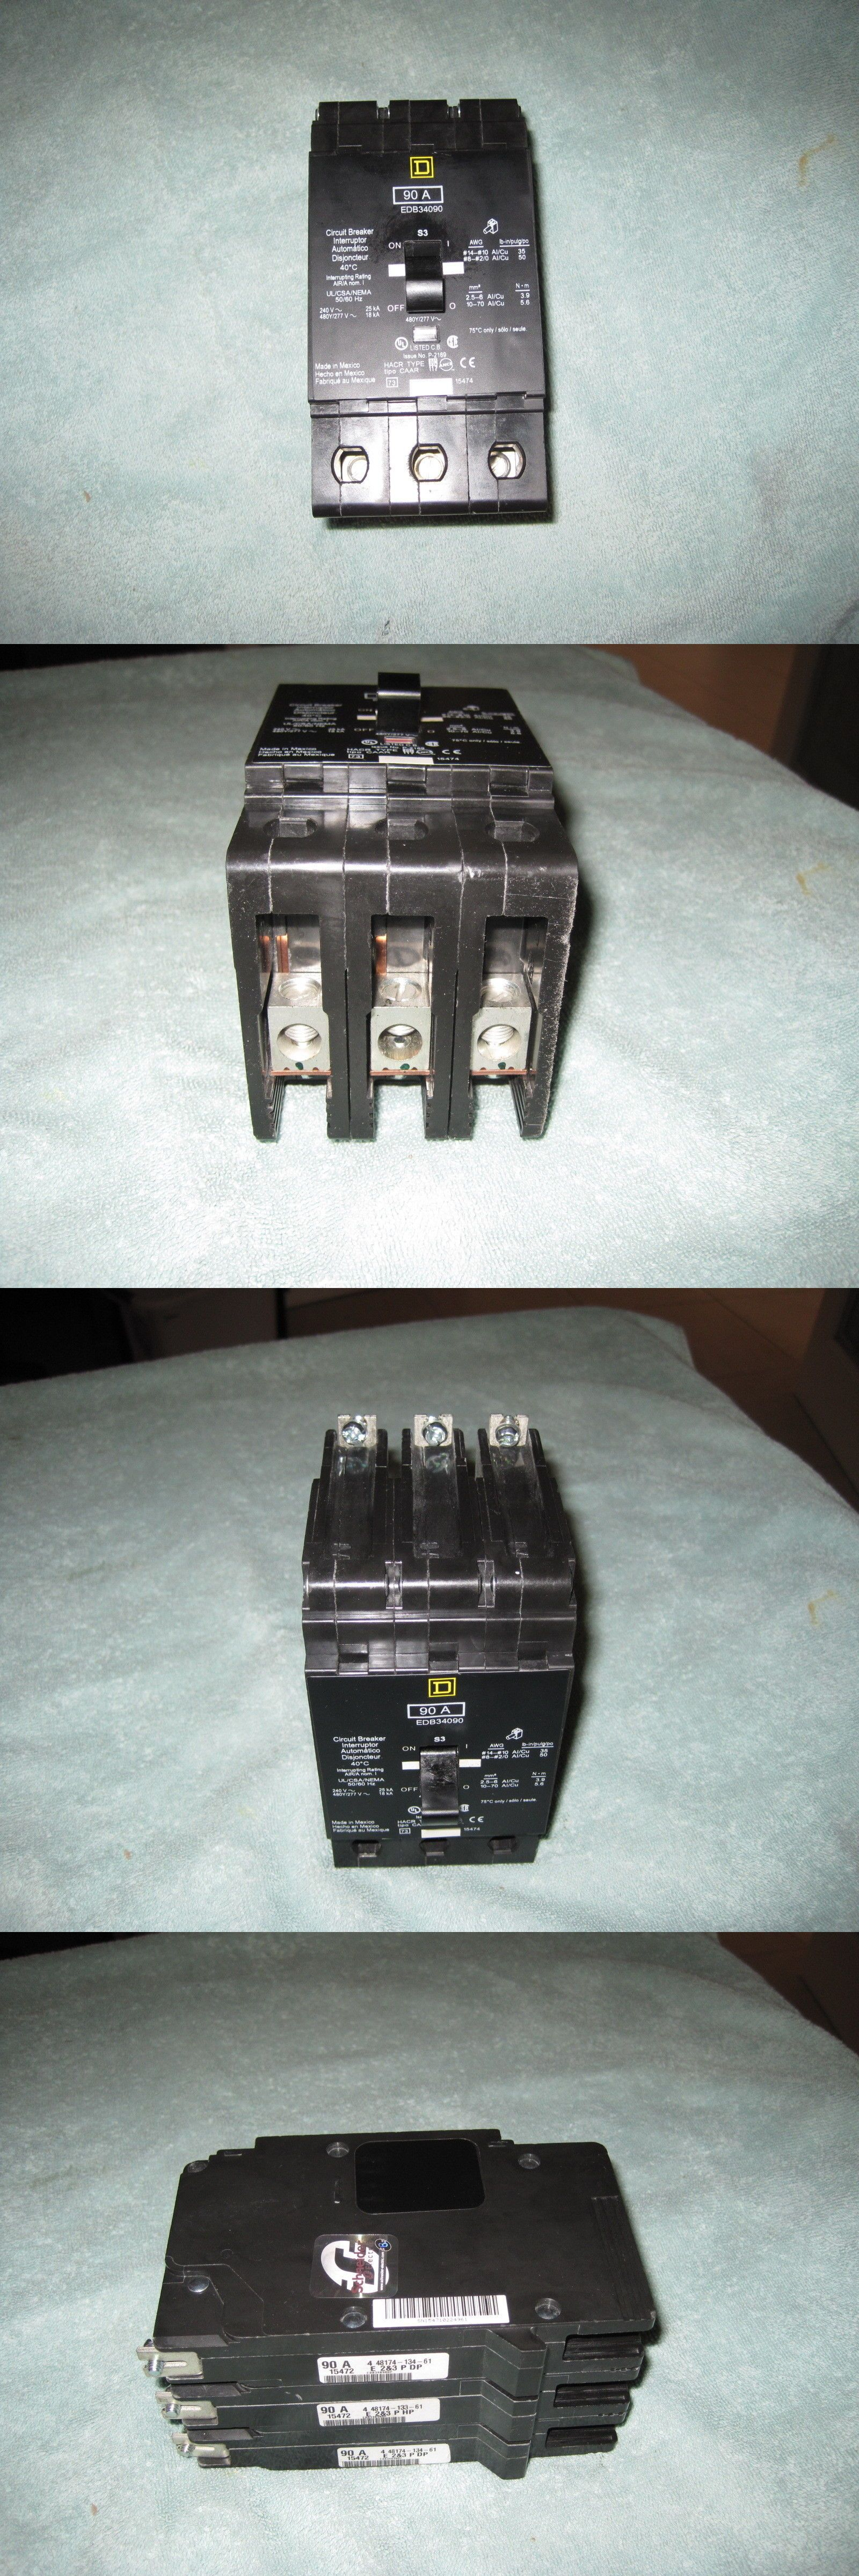 medium resolution of circuit breakers and fuse boxes 20596 square d edb34090 circuit breaker 3 pole 90 amp 480 volt buy it now only 159 95 on ebay circuit breakers